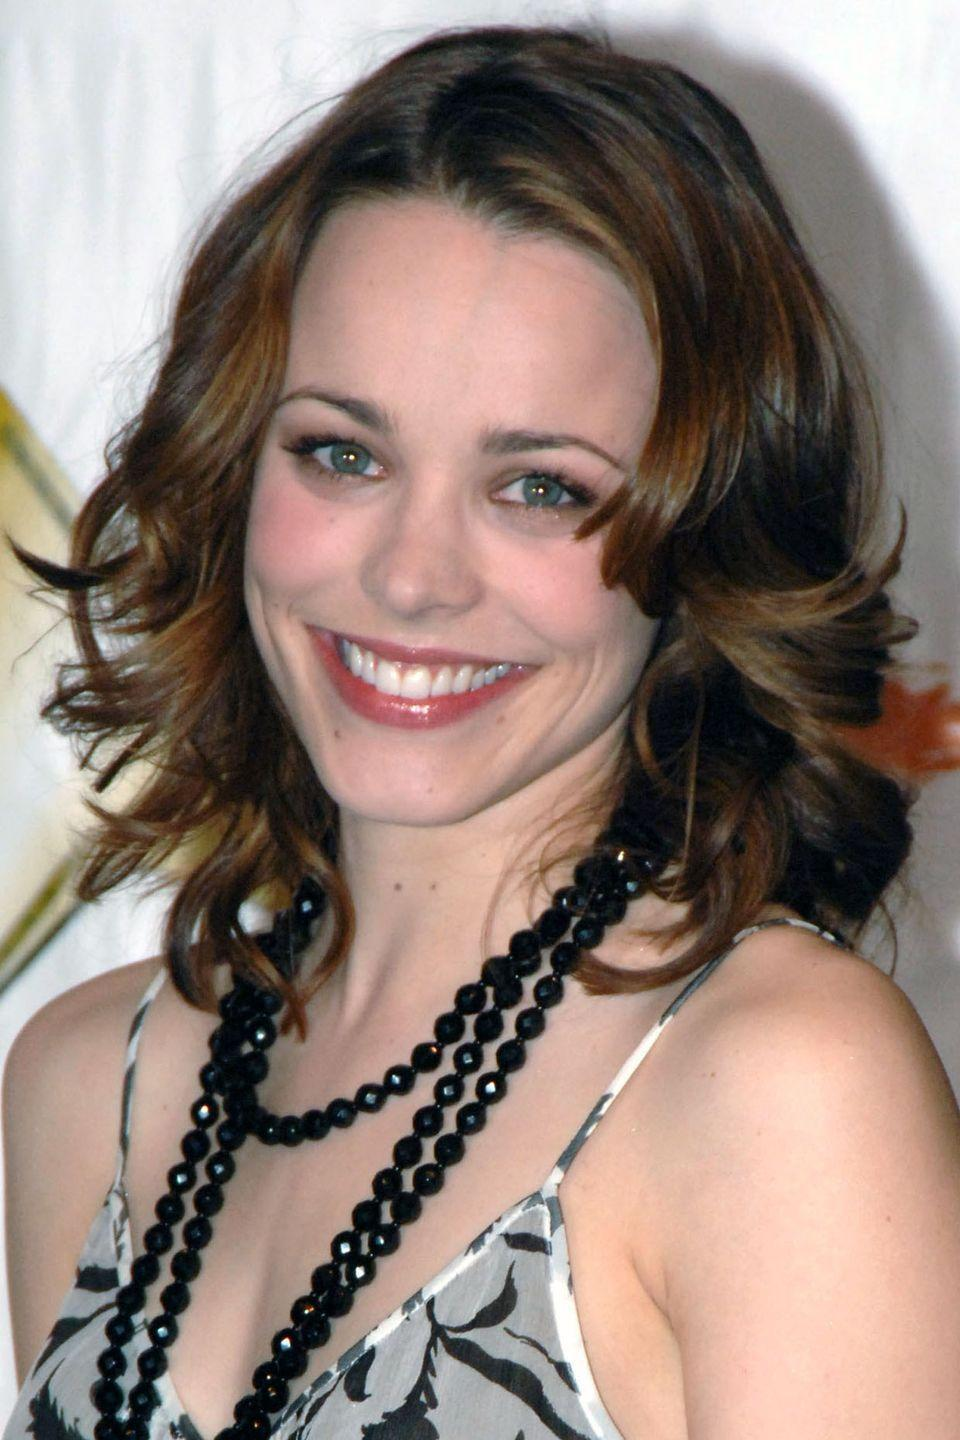 <p>Despite seeming so realistically blonde, this romantic-movie starlet grew up with naturally highlighted medium-brown hair.</p>